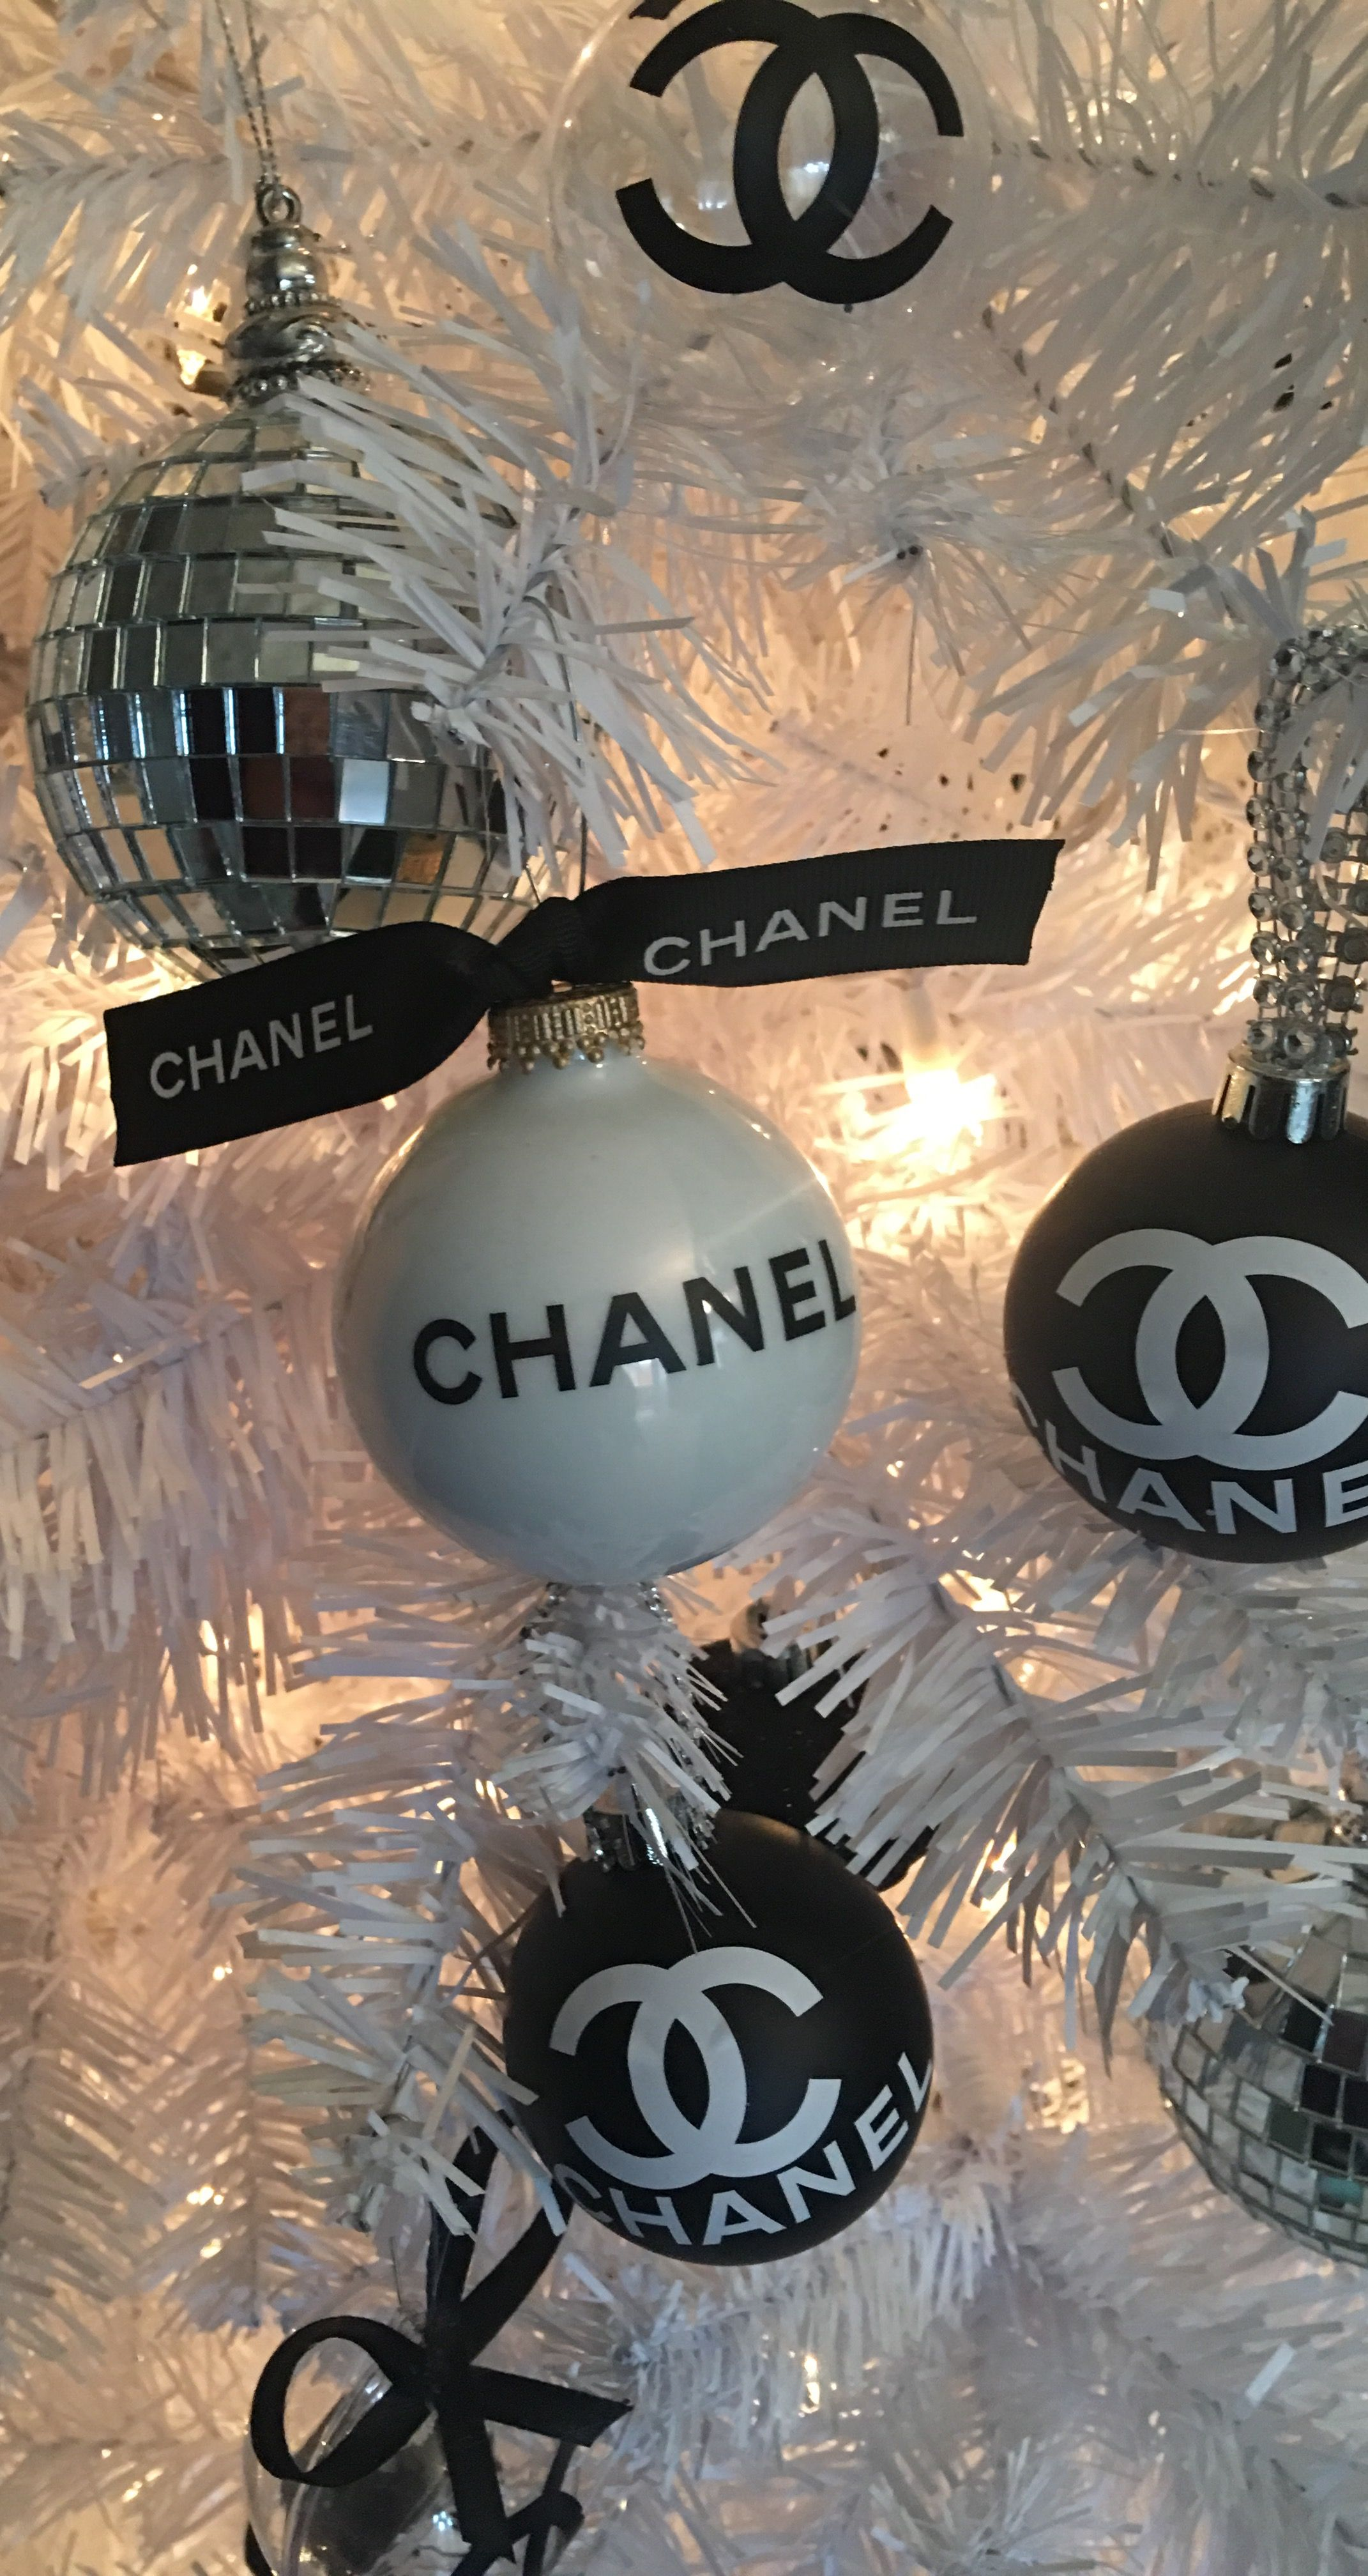 Chanel Christmas Ornaments.Pin By Grete Aasen On Chanel Chanel Decor Chanel Fashion